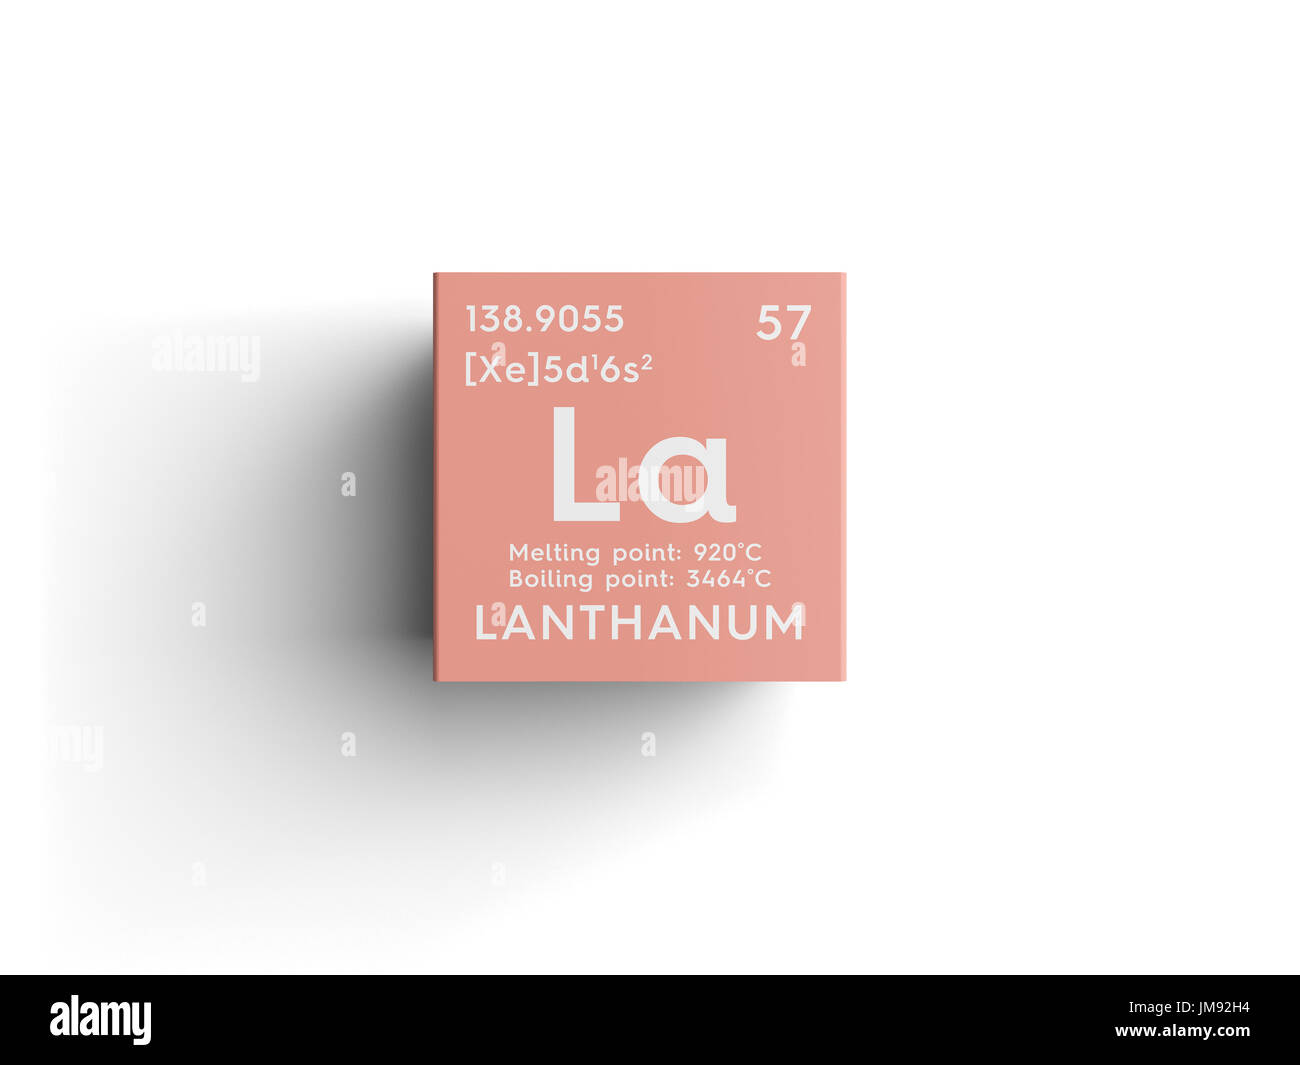 Periodic table lanthanum gallery periodic table images lanthanum chemical element stock photos lanthanum chemical lanthanum lanthanoids chemical element of mendeleevs periodic table lanthanum gamestrikefo Image collections